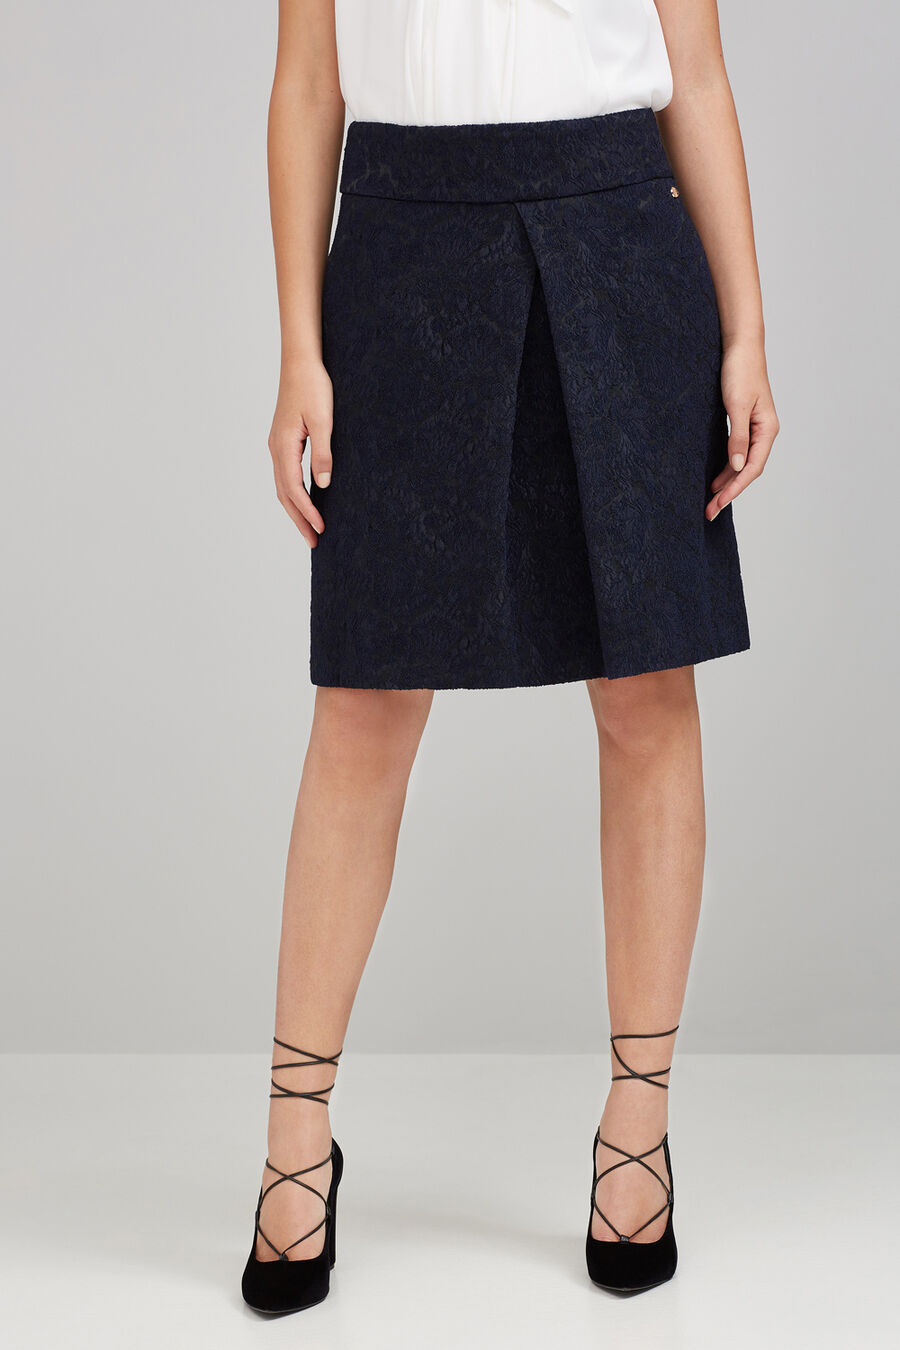 Navy jacquard skirt